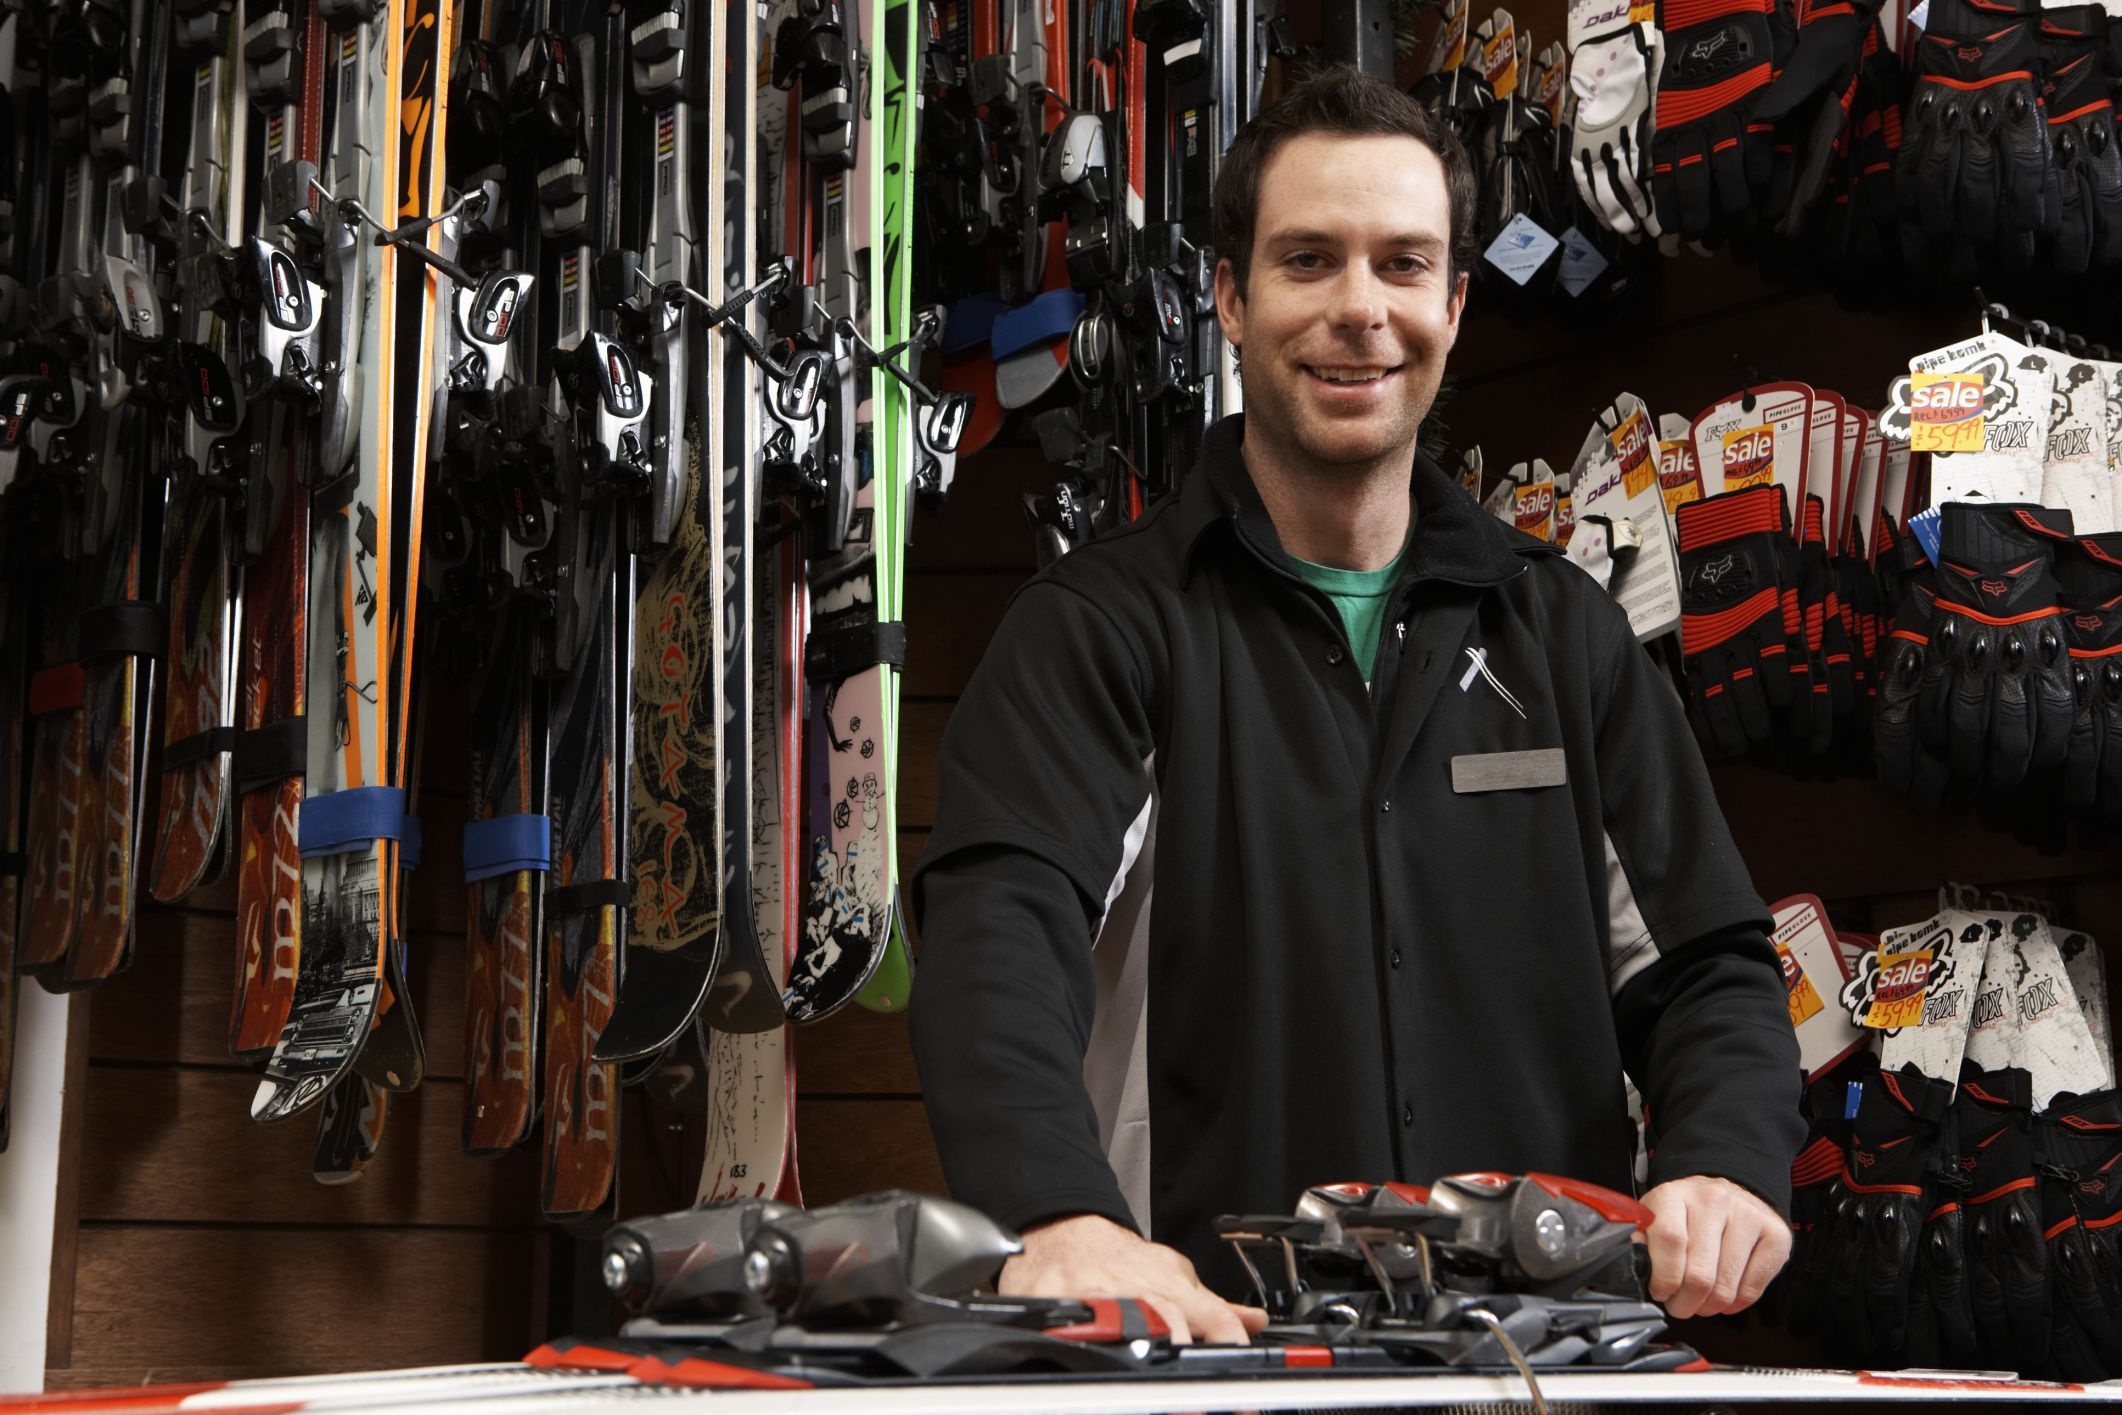 Man checking skis and bindings in a shop